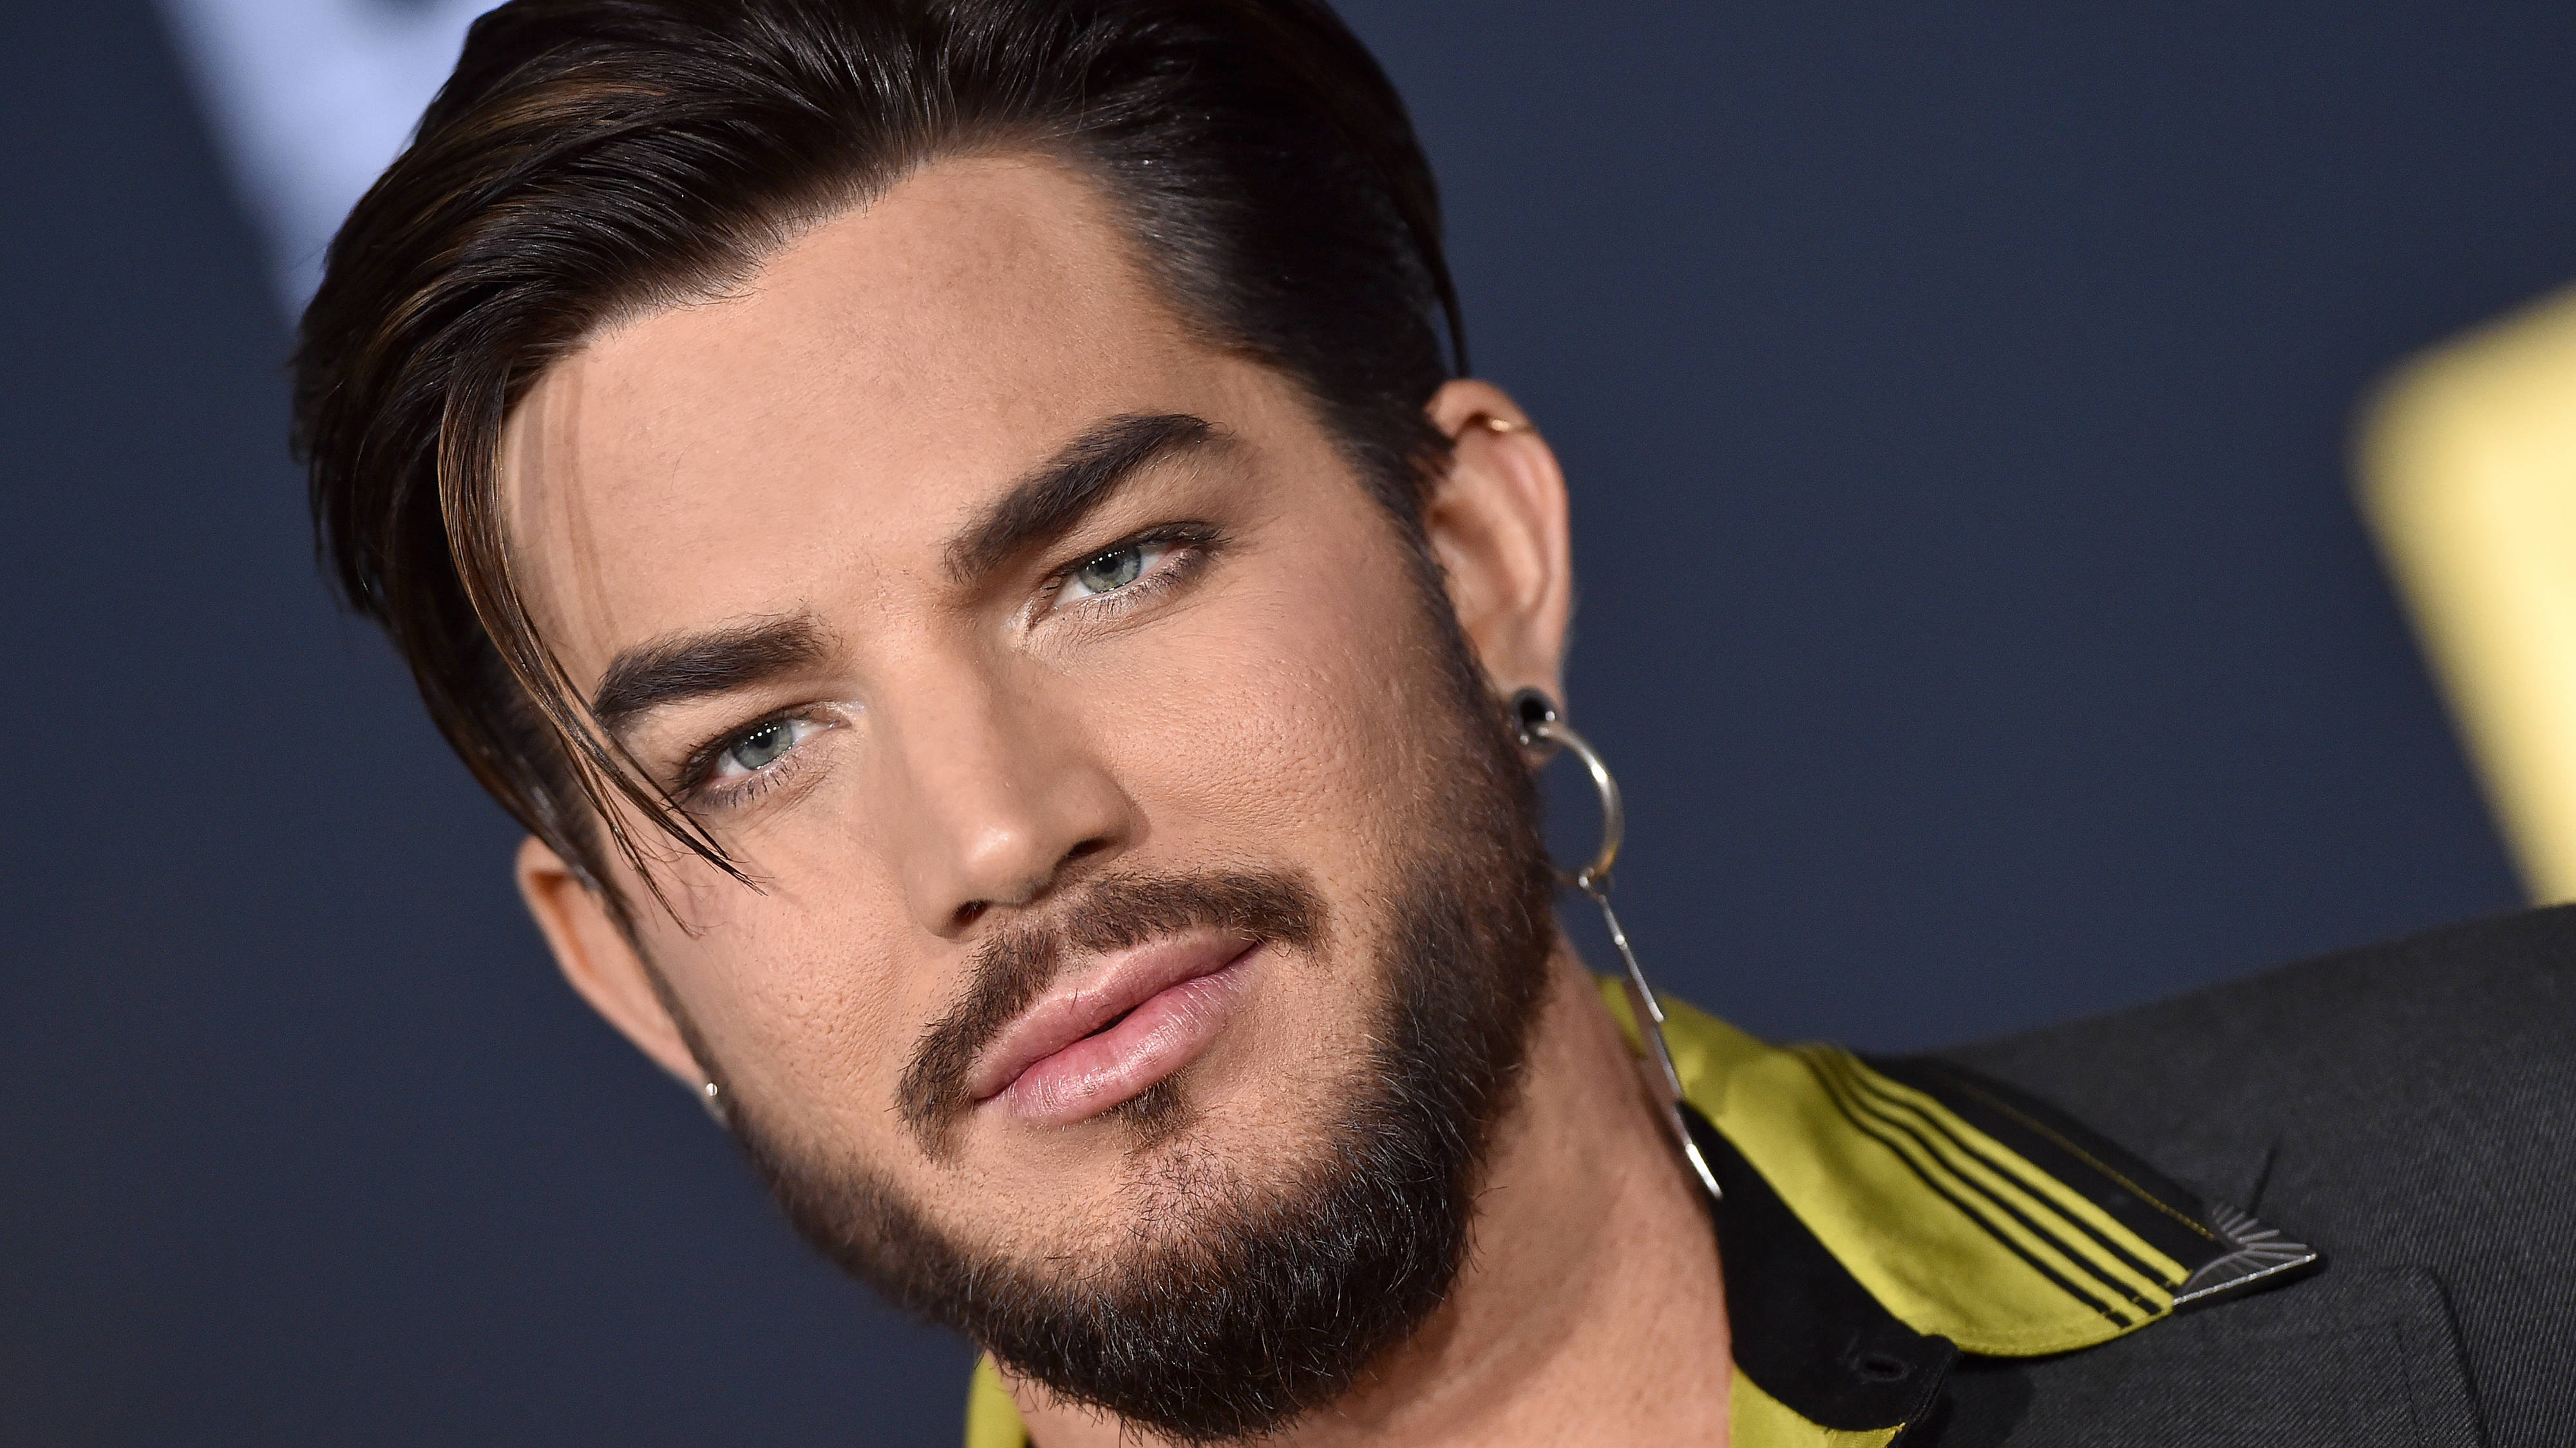 Adam Lambert facts: Queen singer's age, partner, career and American Idol  past revealed - Smooth